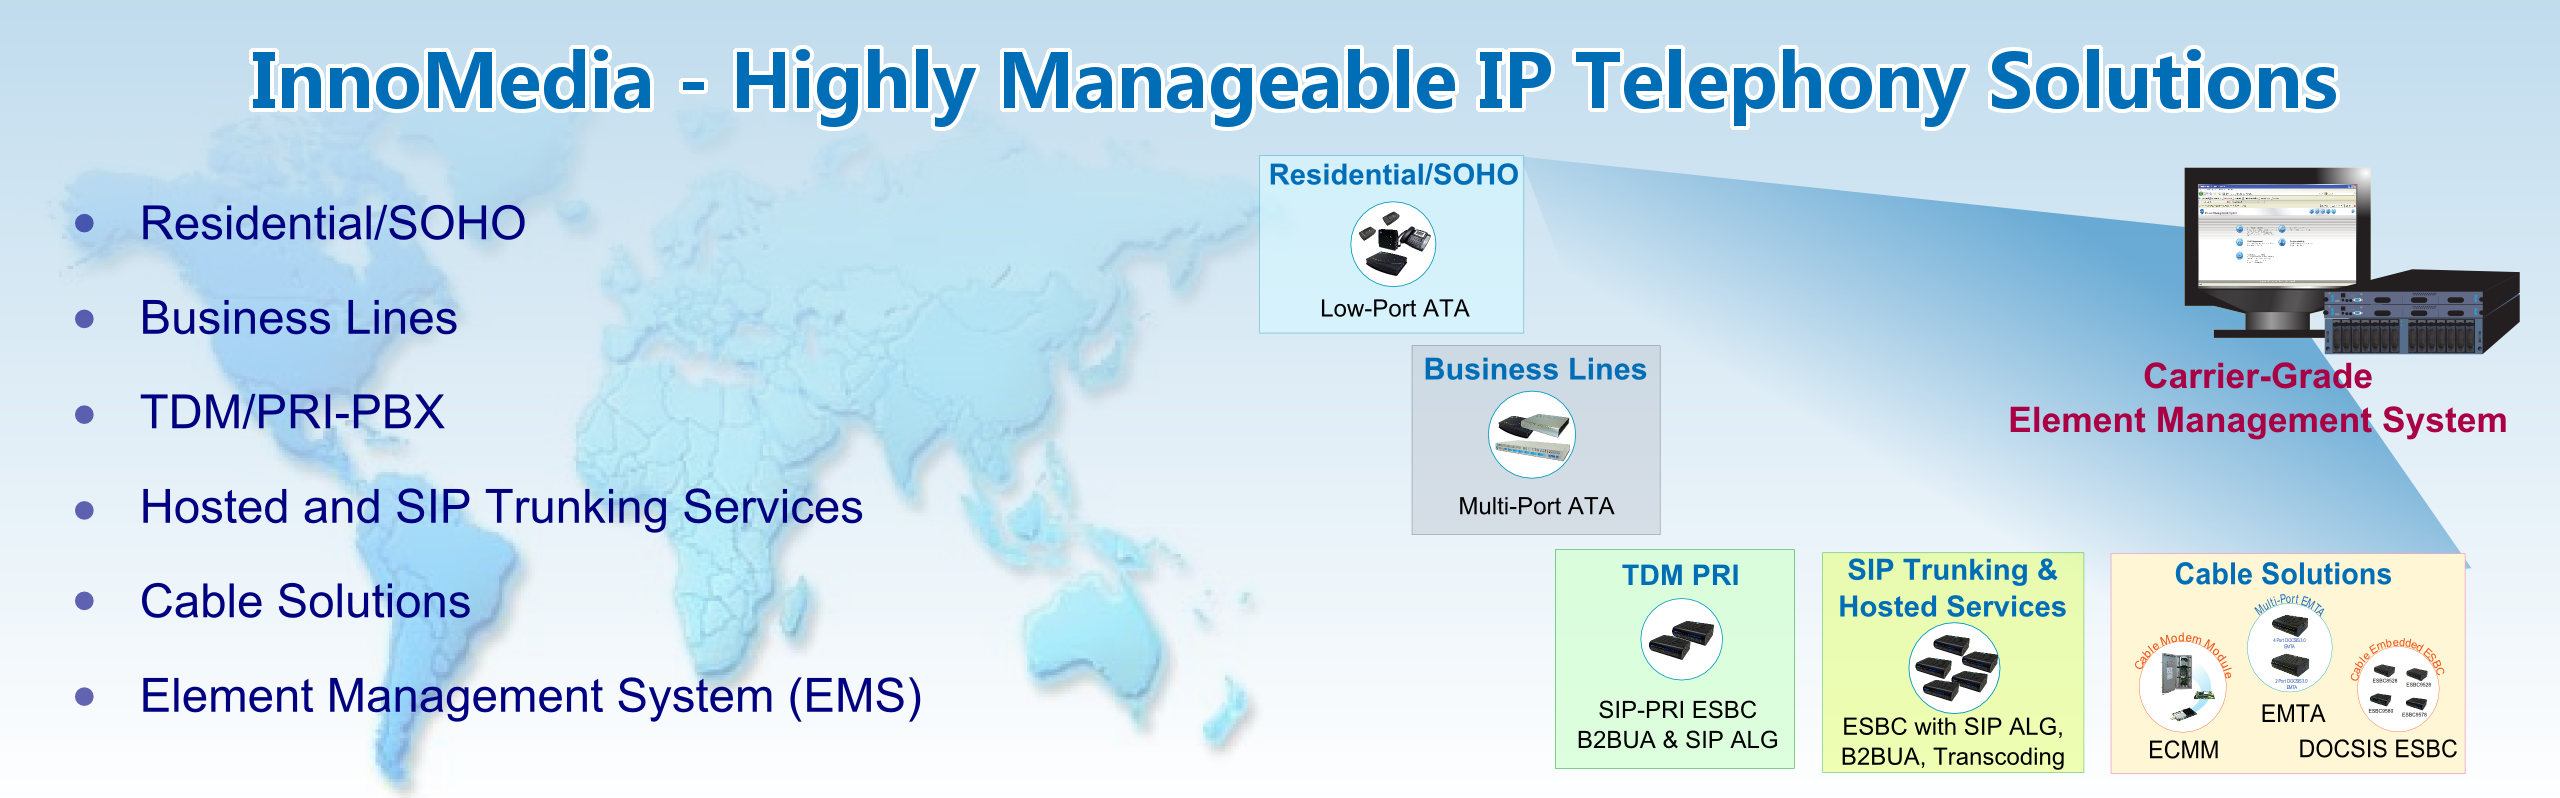 InnoMedia – Highly Manageable IP Telephony Solutions